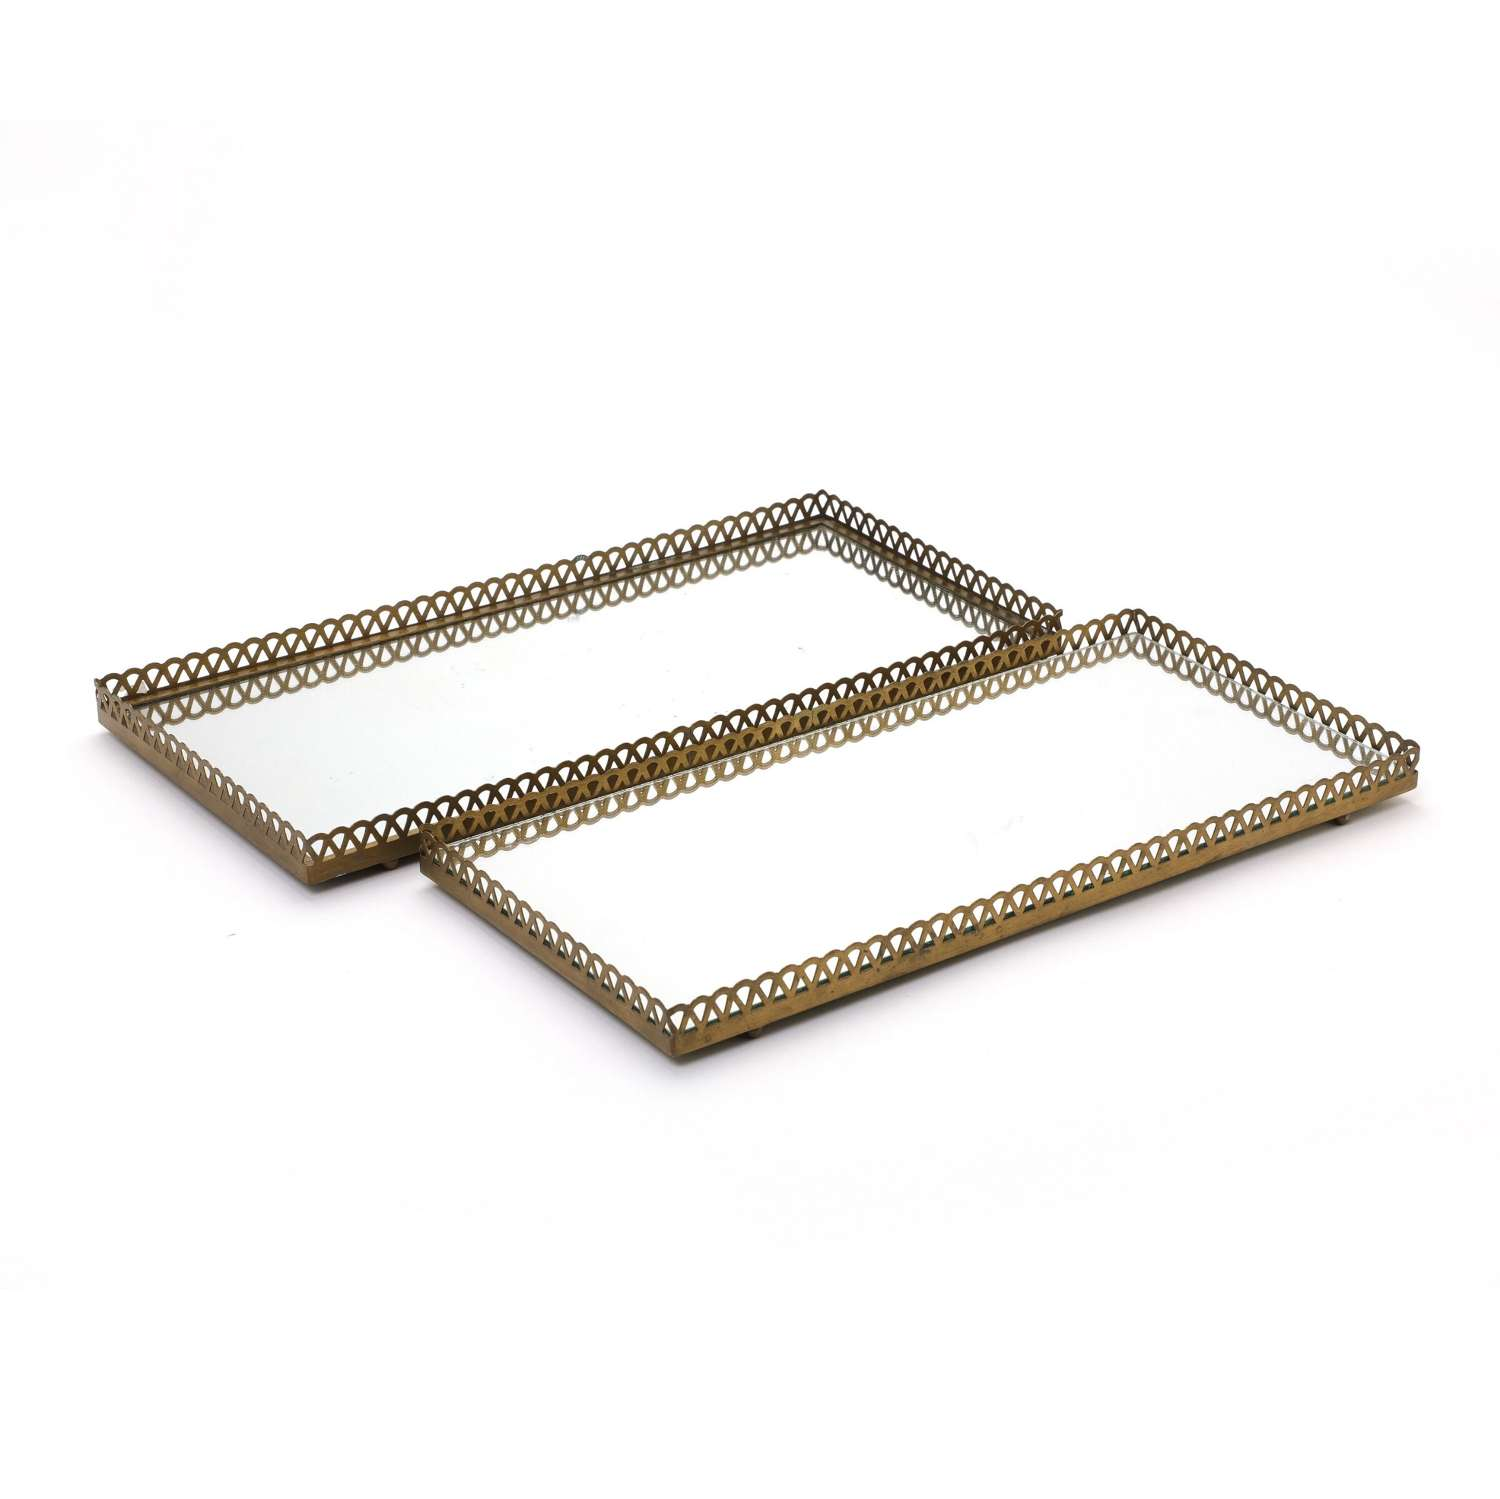 Pair of 1960s Swedish Brass Mirrored Trays or Plateaus